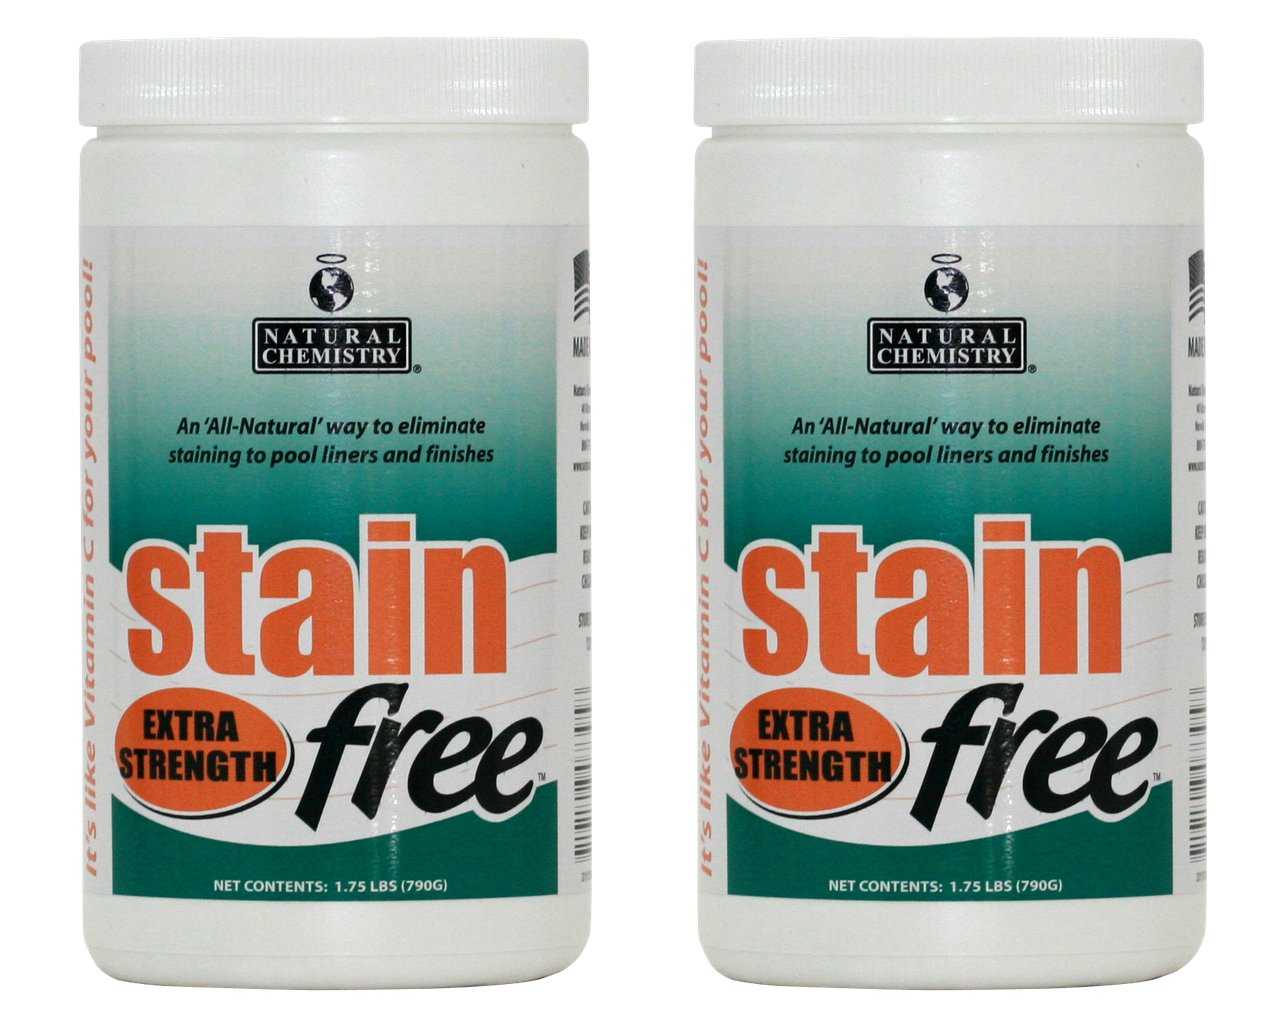 2) Natural Chemistry 07395 STAINfree Extra Strength Metal Stain Remover Buckets by Natural Chemistry